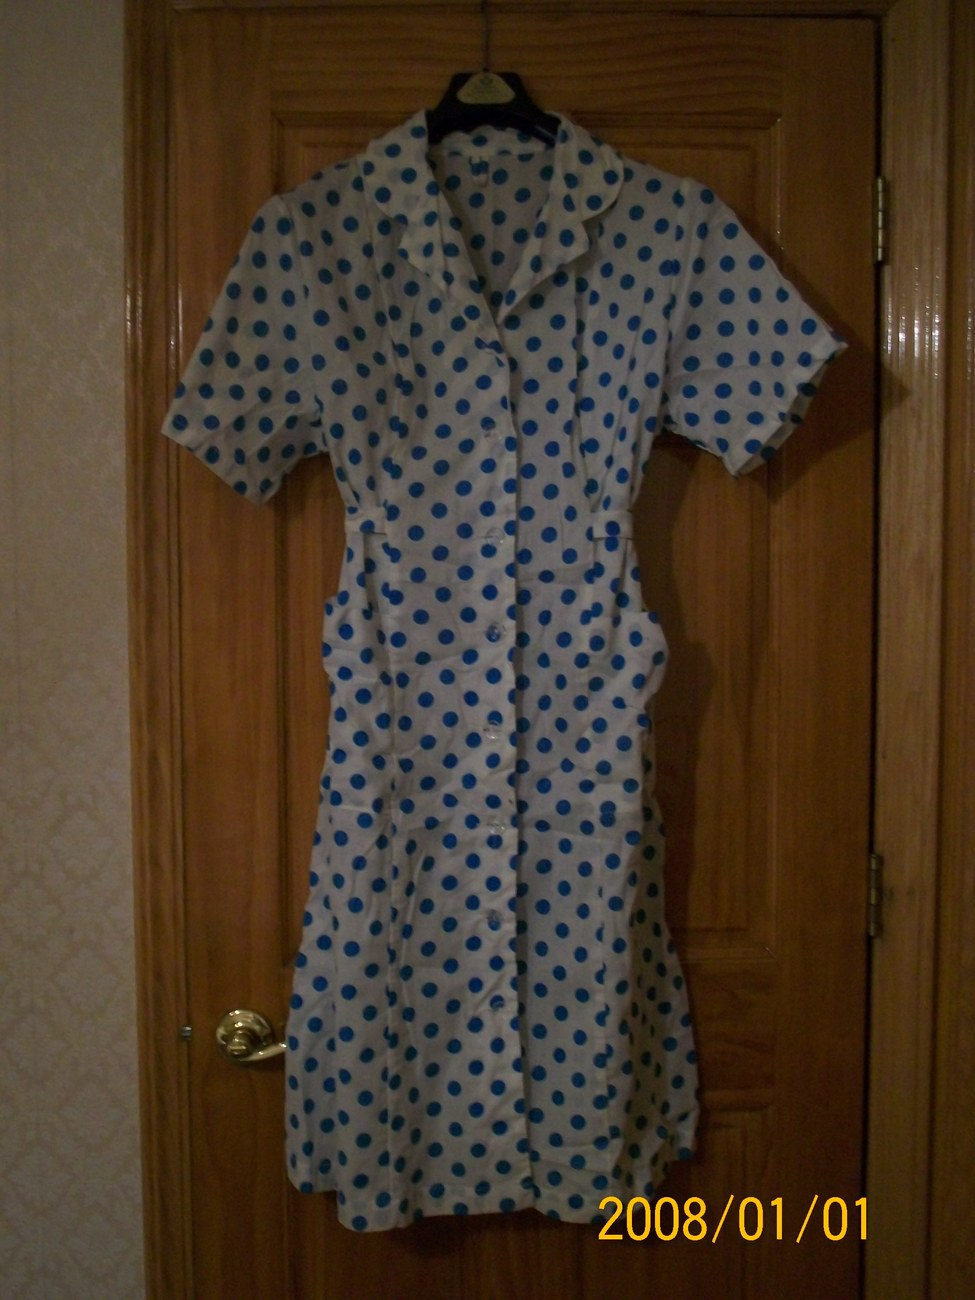 Robe housecoat house coat gown brand new 100% cotton